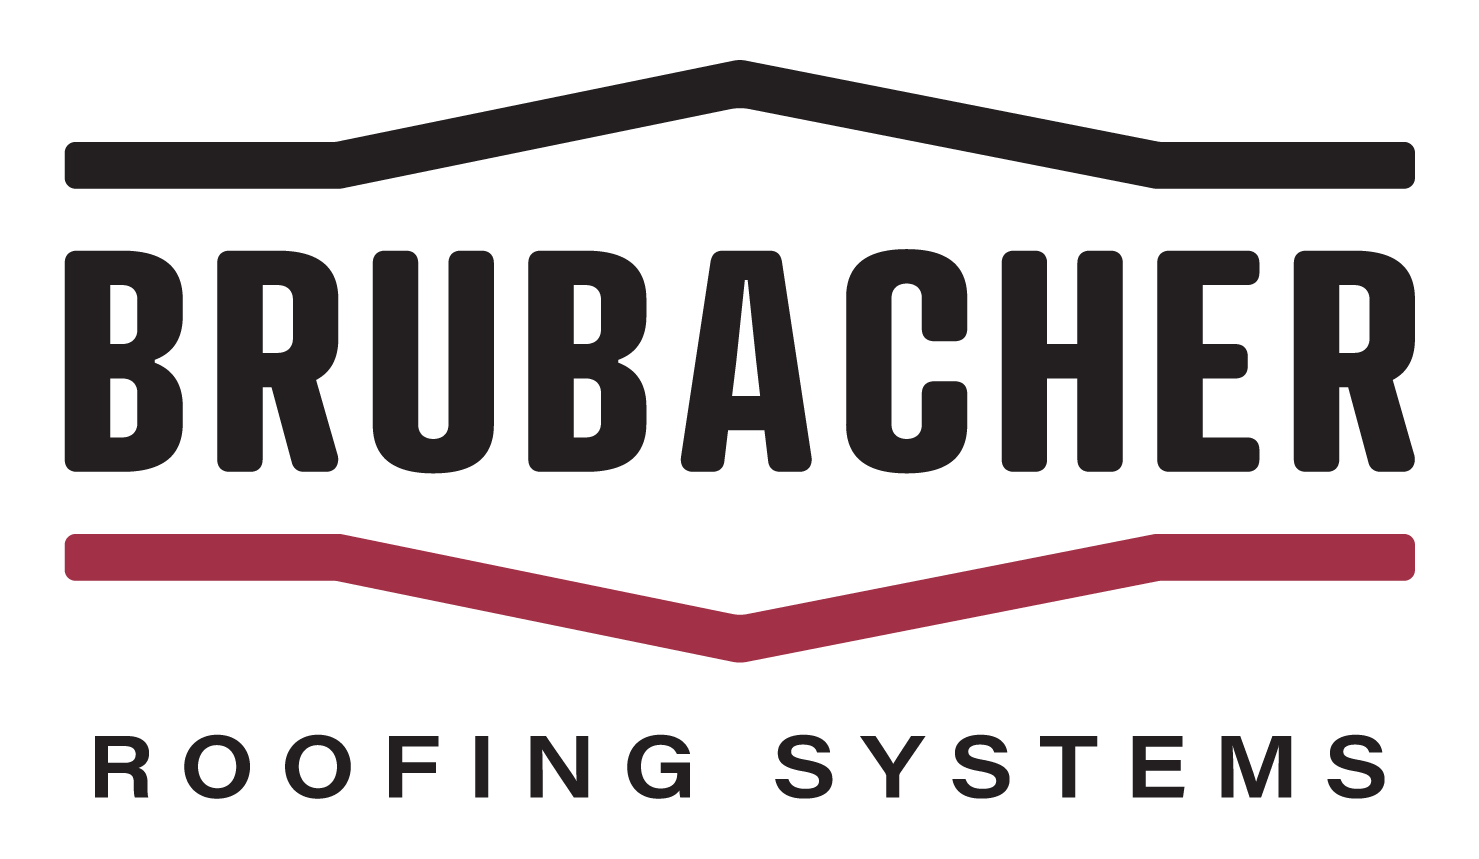 Brubacher Roofing Systems - Roofing Contractors | Roof Restoration | Kitchener | Waterloo | Cambridge | Ontario